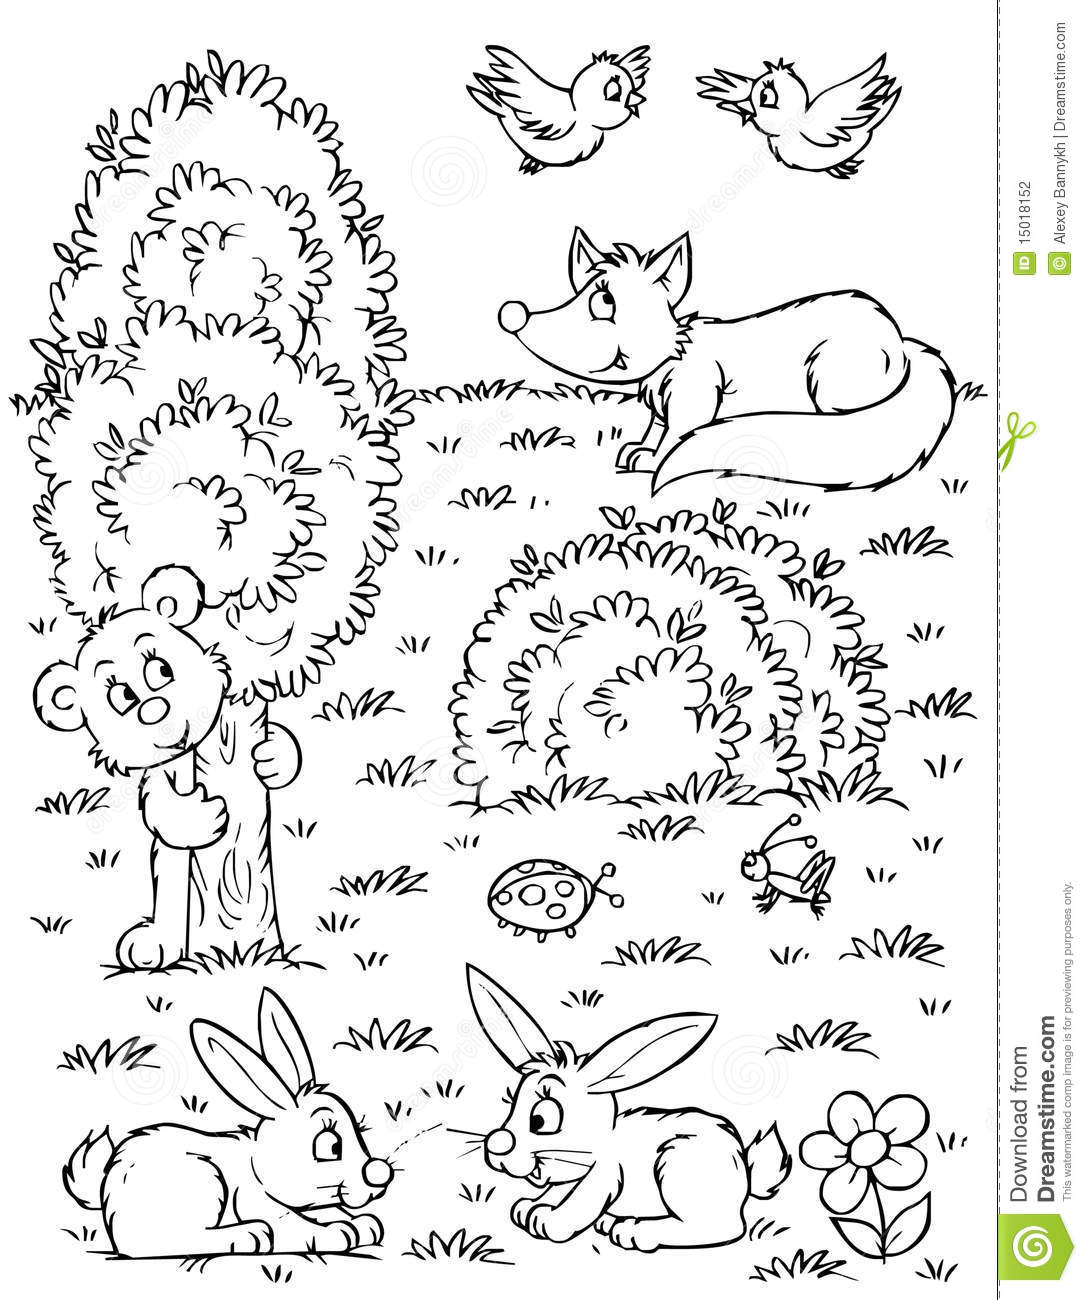 black and white forest animals coloring pages | Fox, bear, hares and birds stock illustration ...